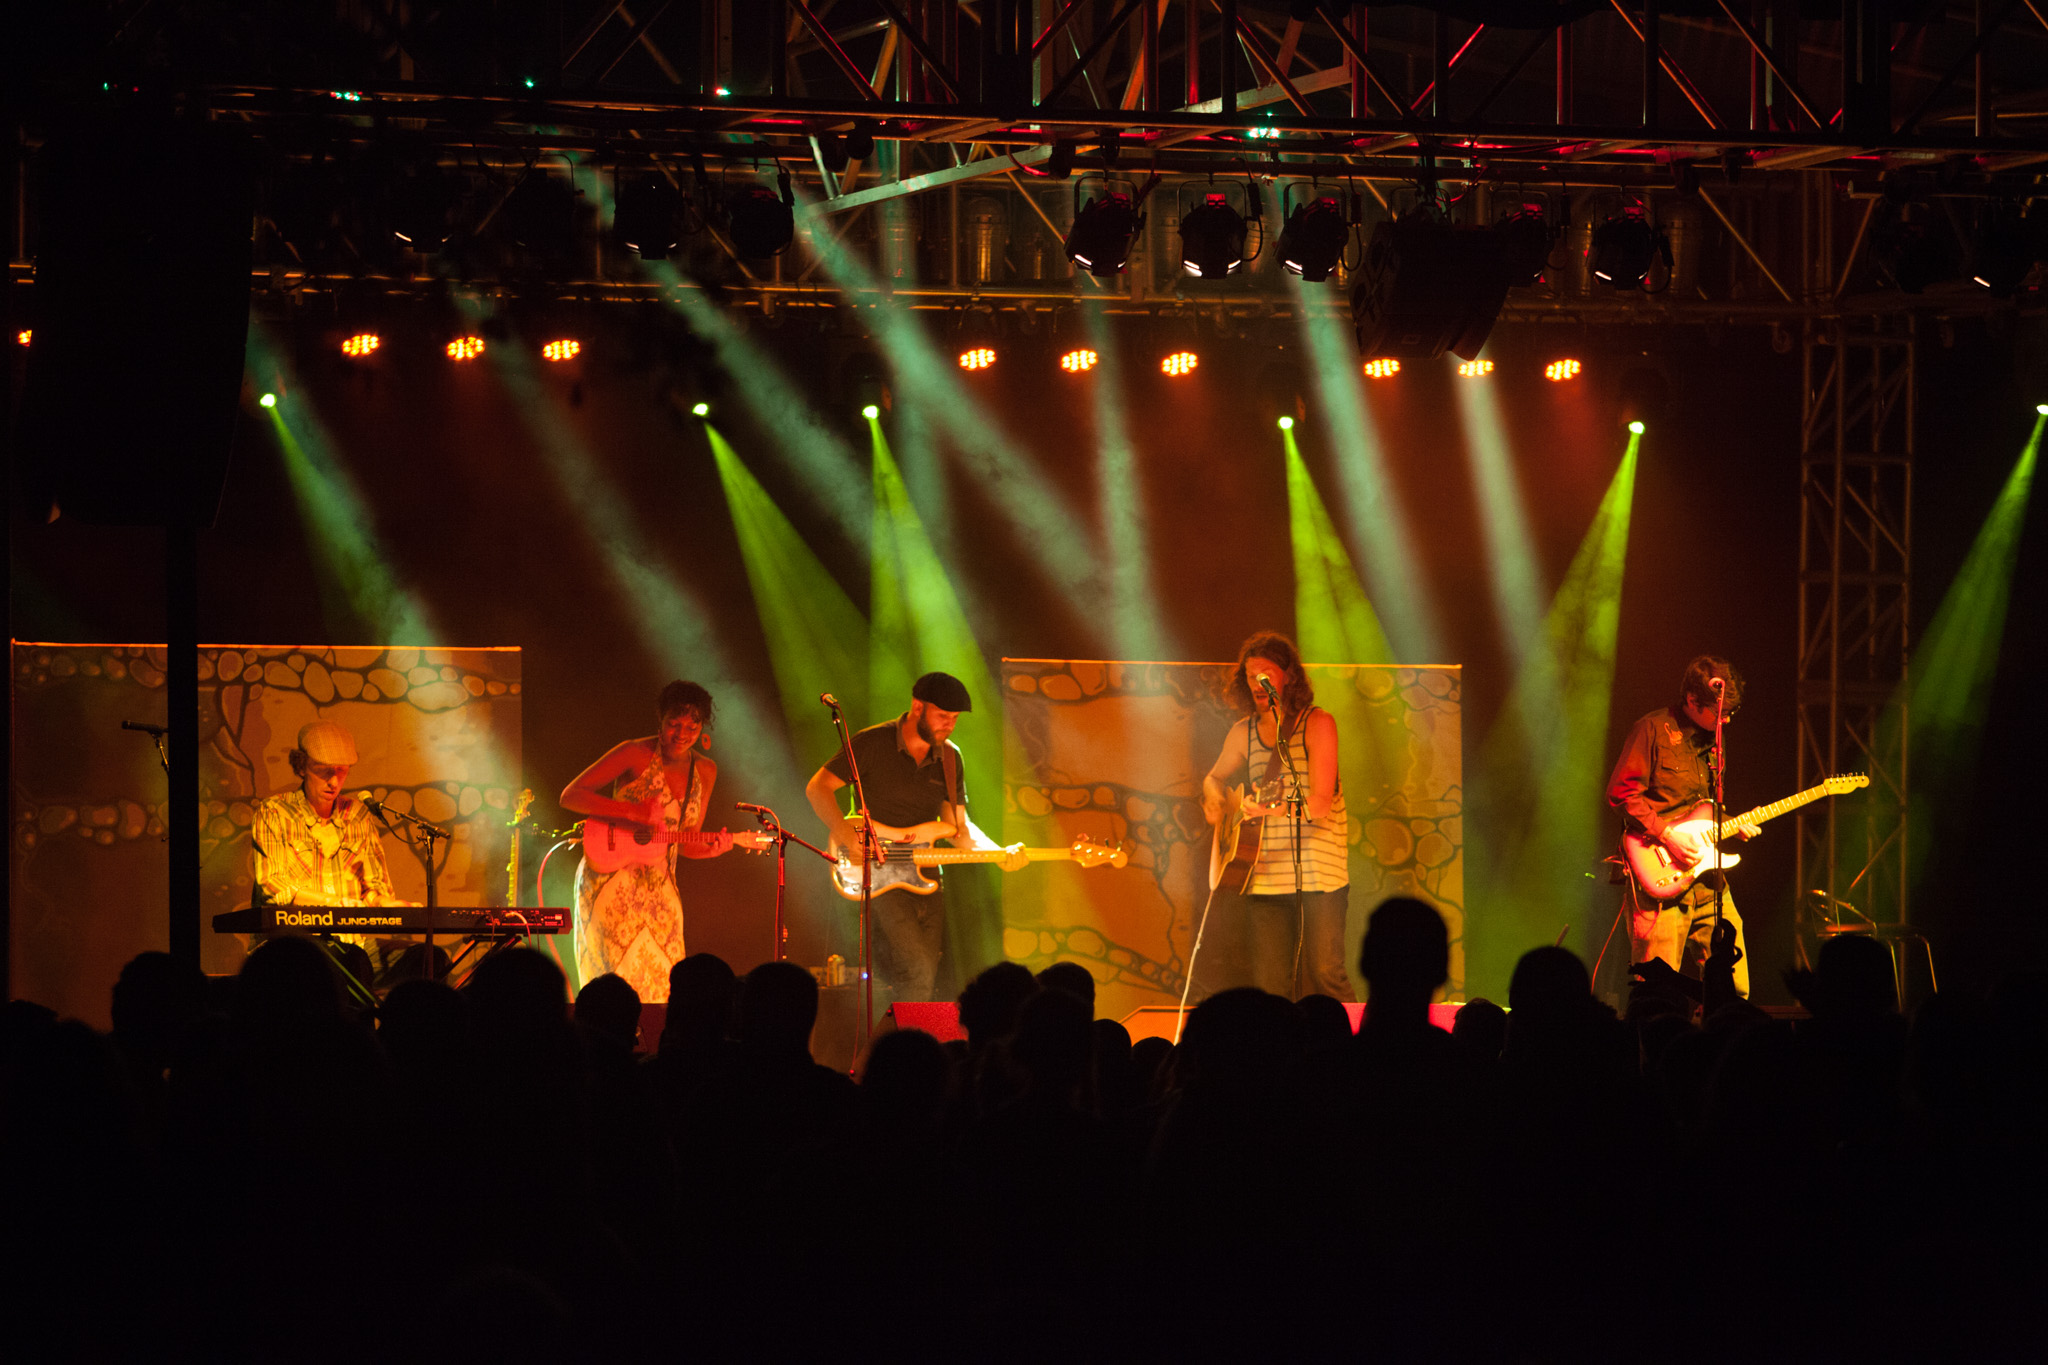 A national bluegrass band performs under big stage lights at Boats and Bluegrass